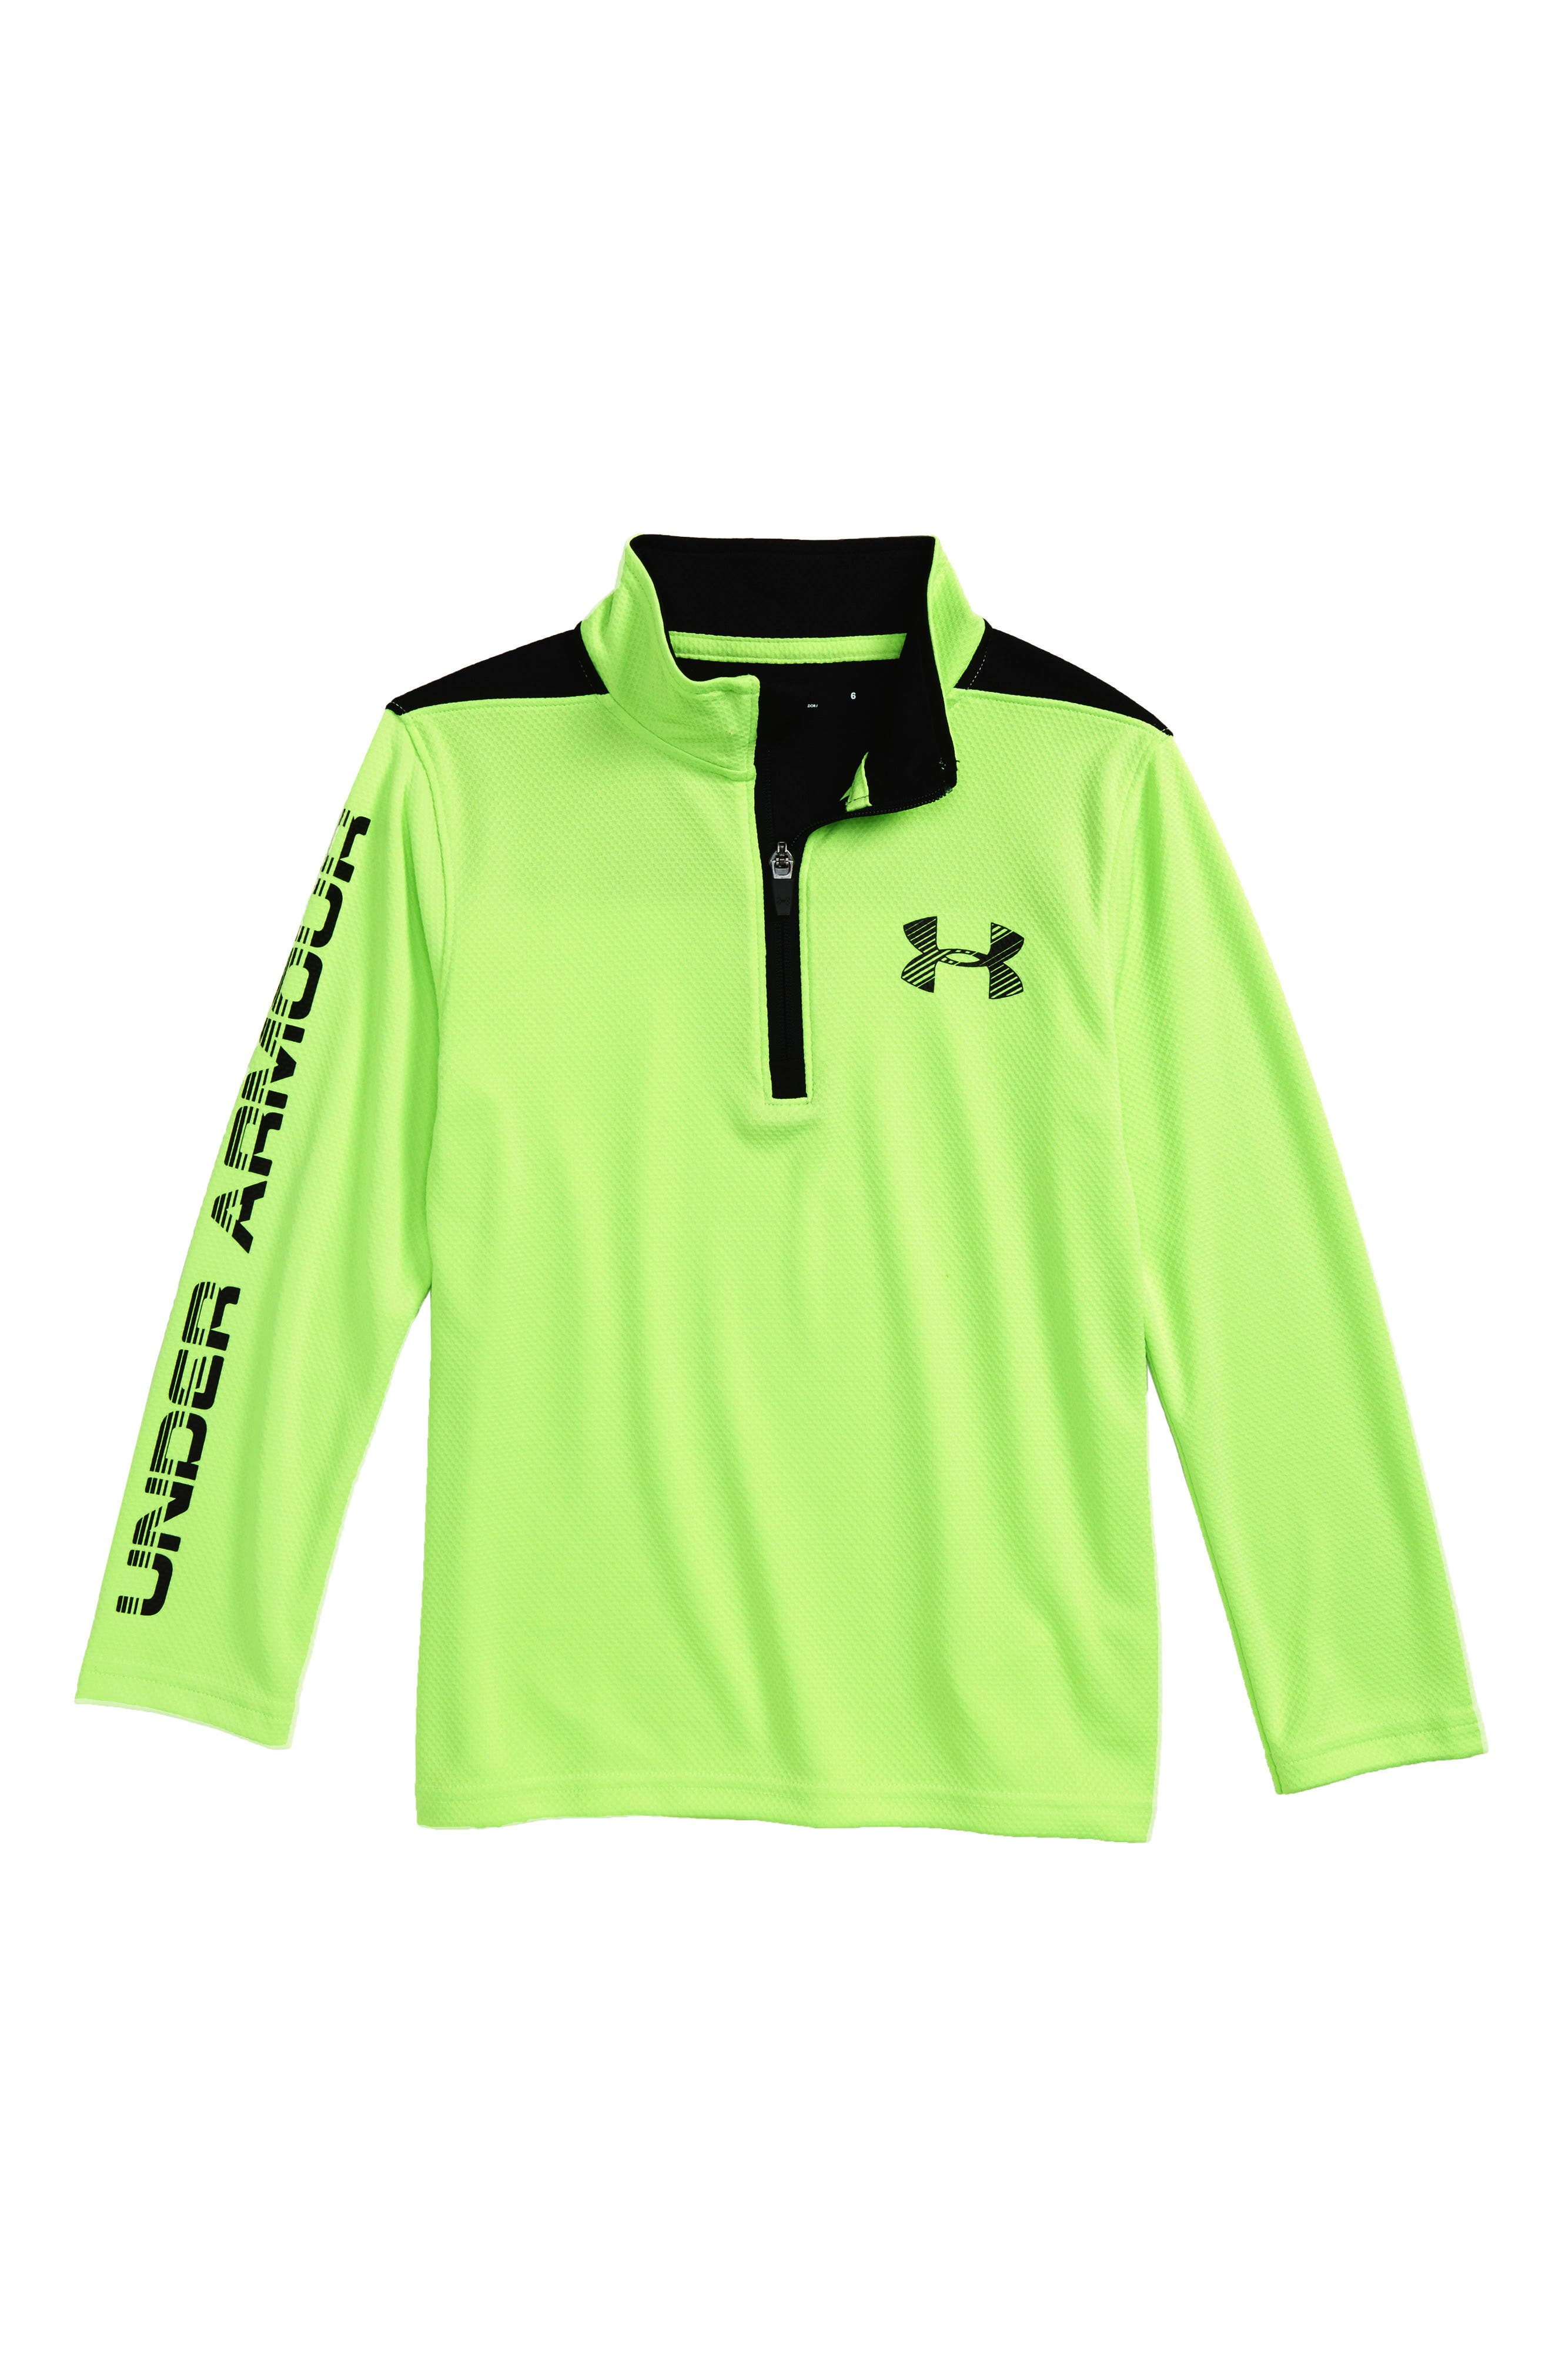 Under Armour Longevity Quarter Zip Top (Toddler Boys & Little Boys)